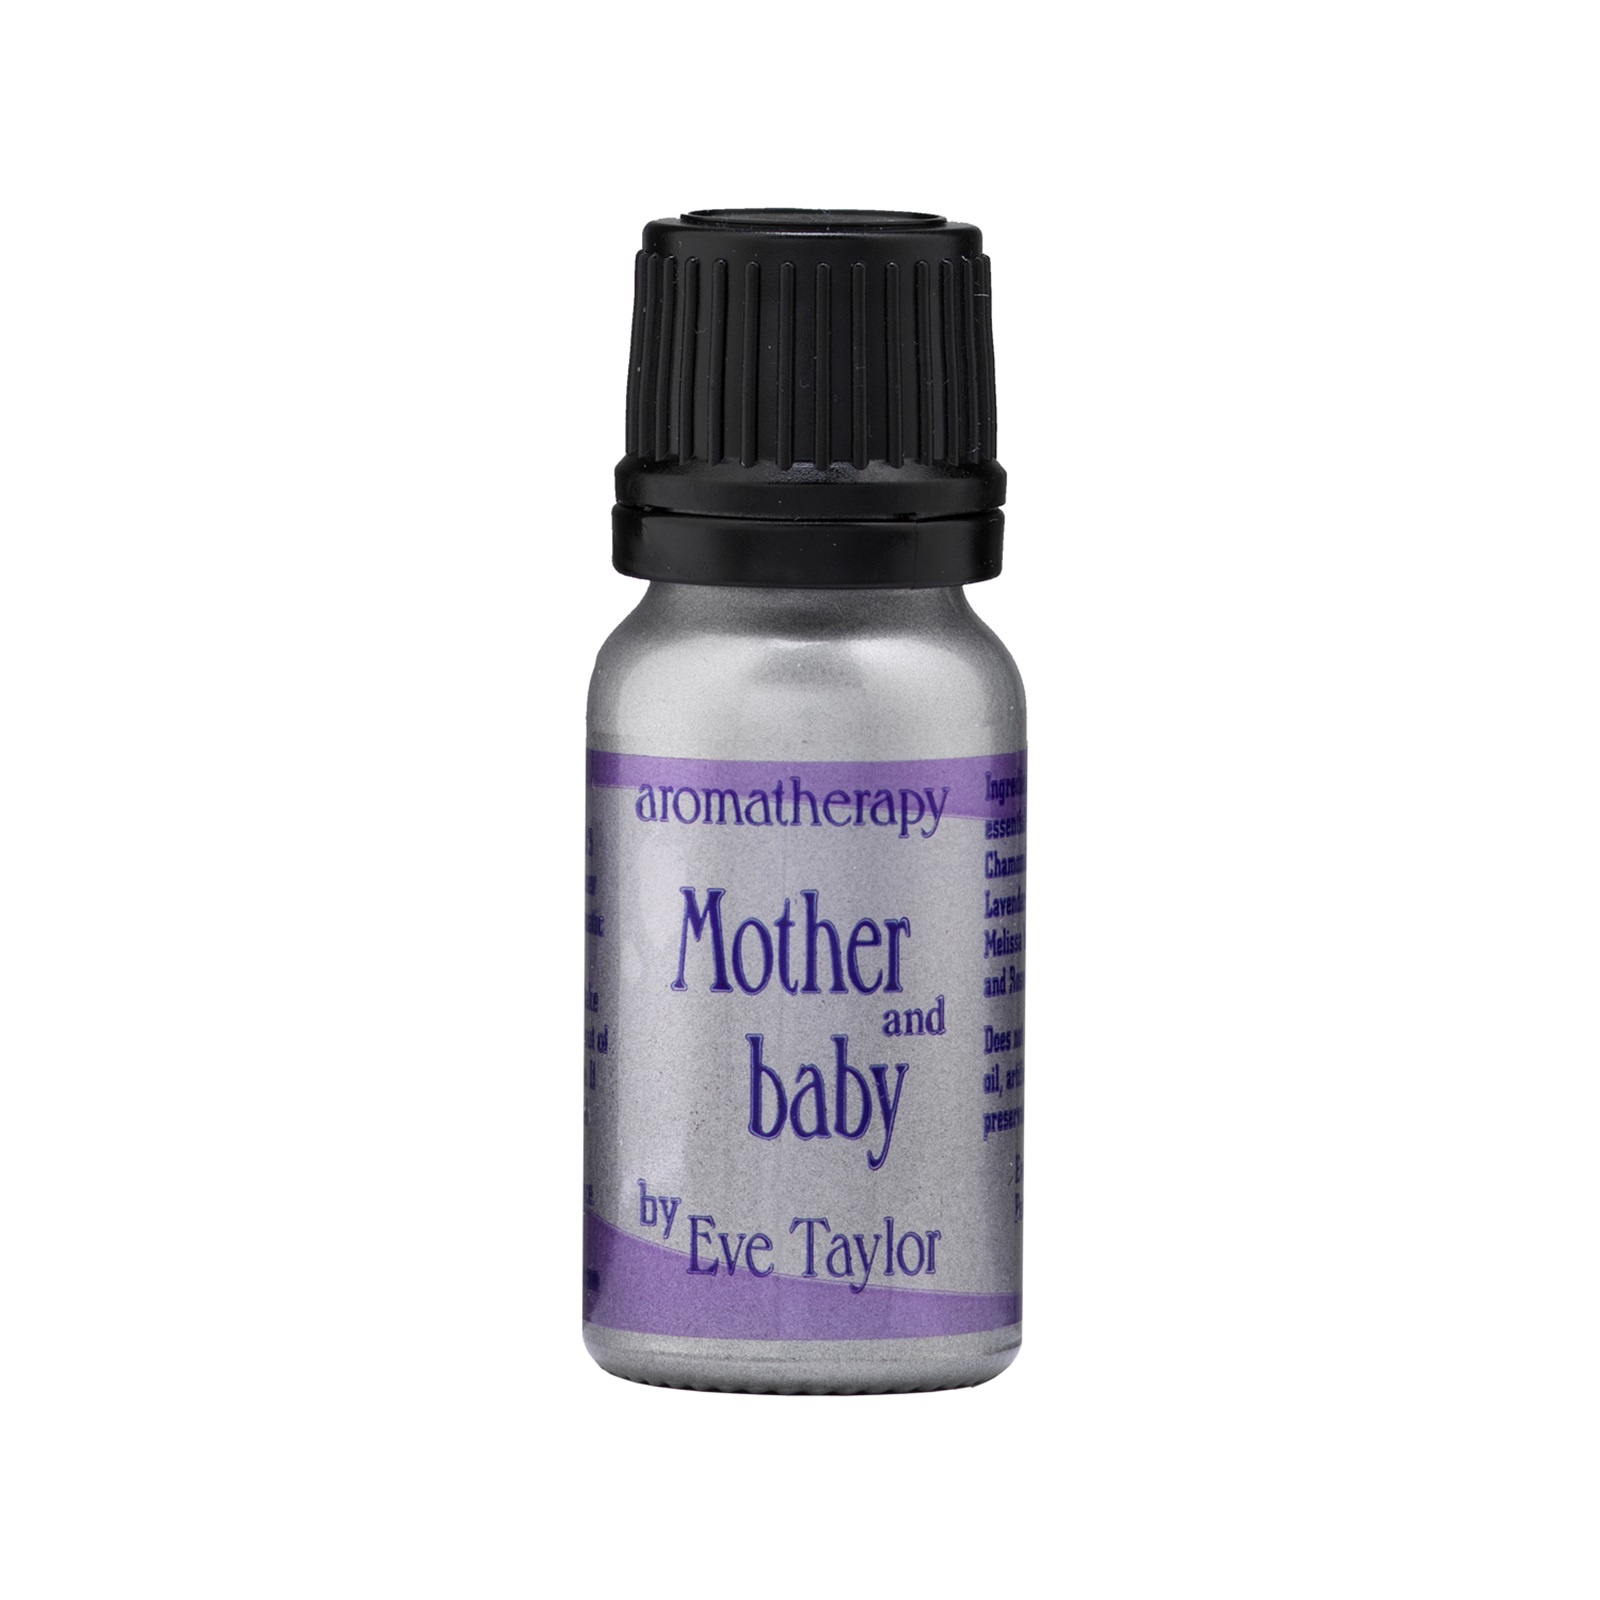 Eve Taylor Blend Mother & Baby diffuser